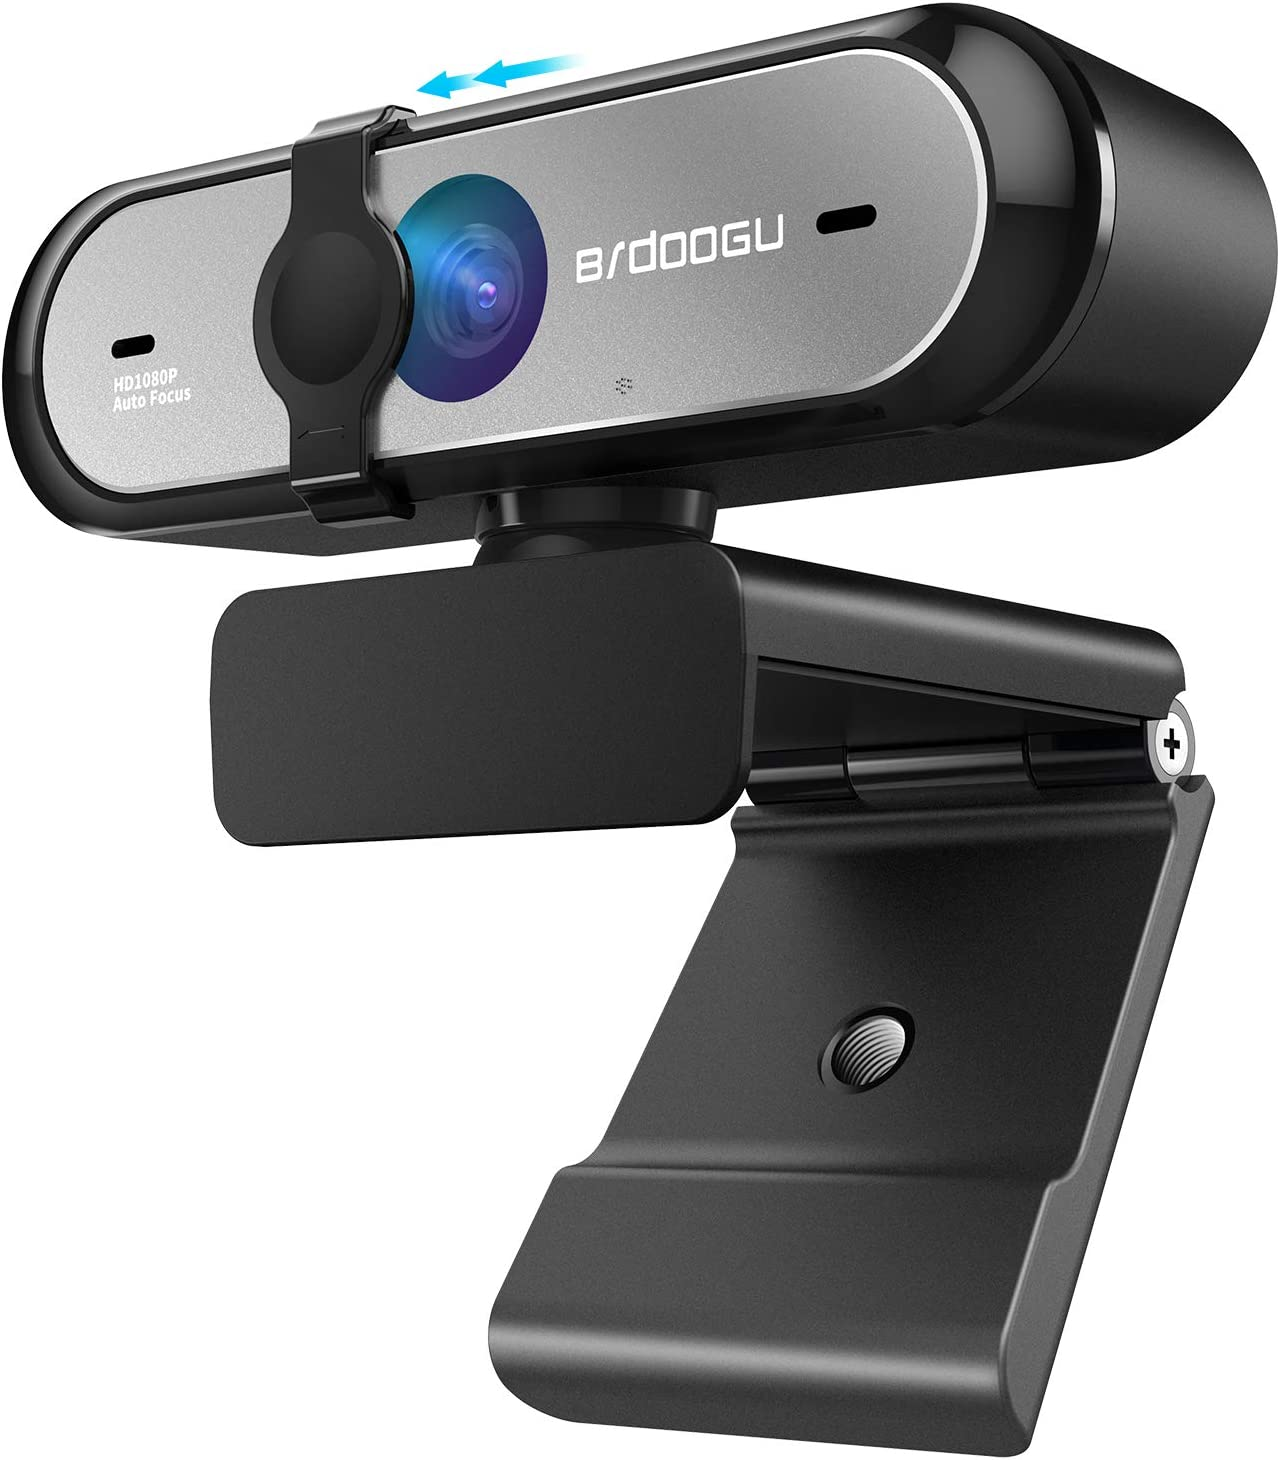 1080P 60FPS Webcam with Microphone, HD USB Web Camera, Built-in Dual Noise Reduction Mics, 90 Degrees Auto Focus for Zoom YouTube Skype FaceTime Hangouts PC Mac Laptop Desktop, Built-in Privacy Cover